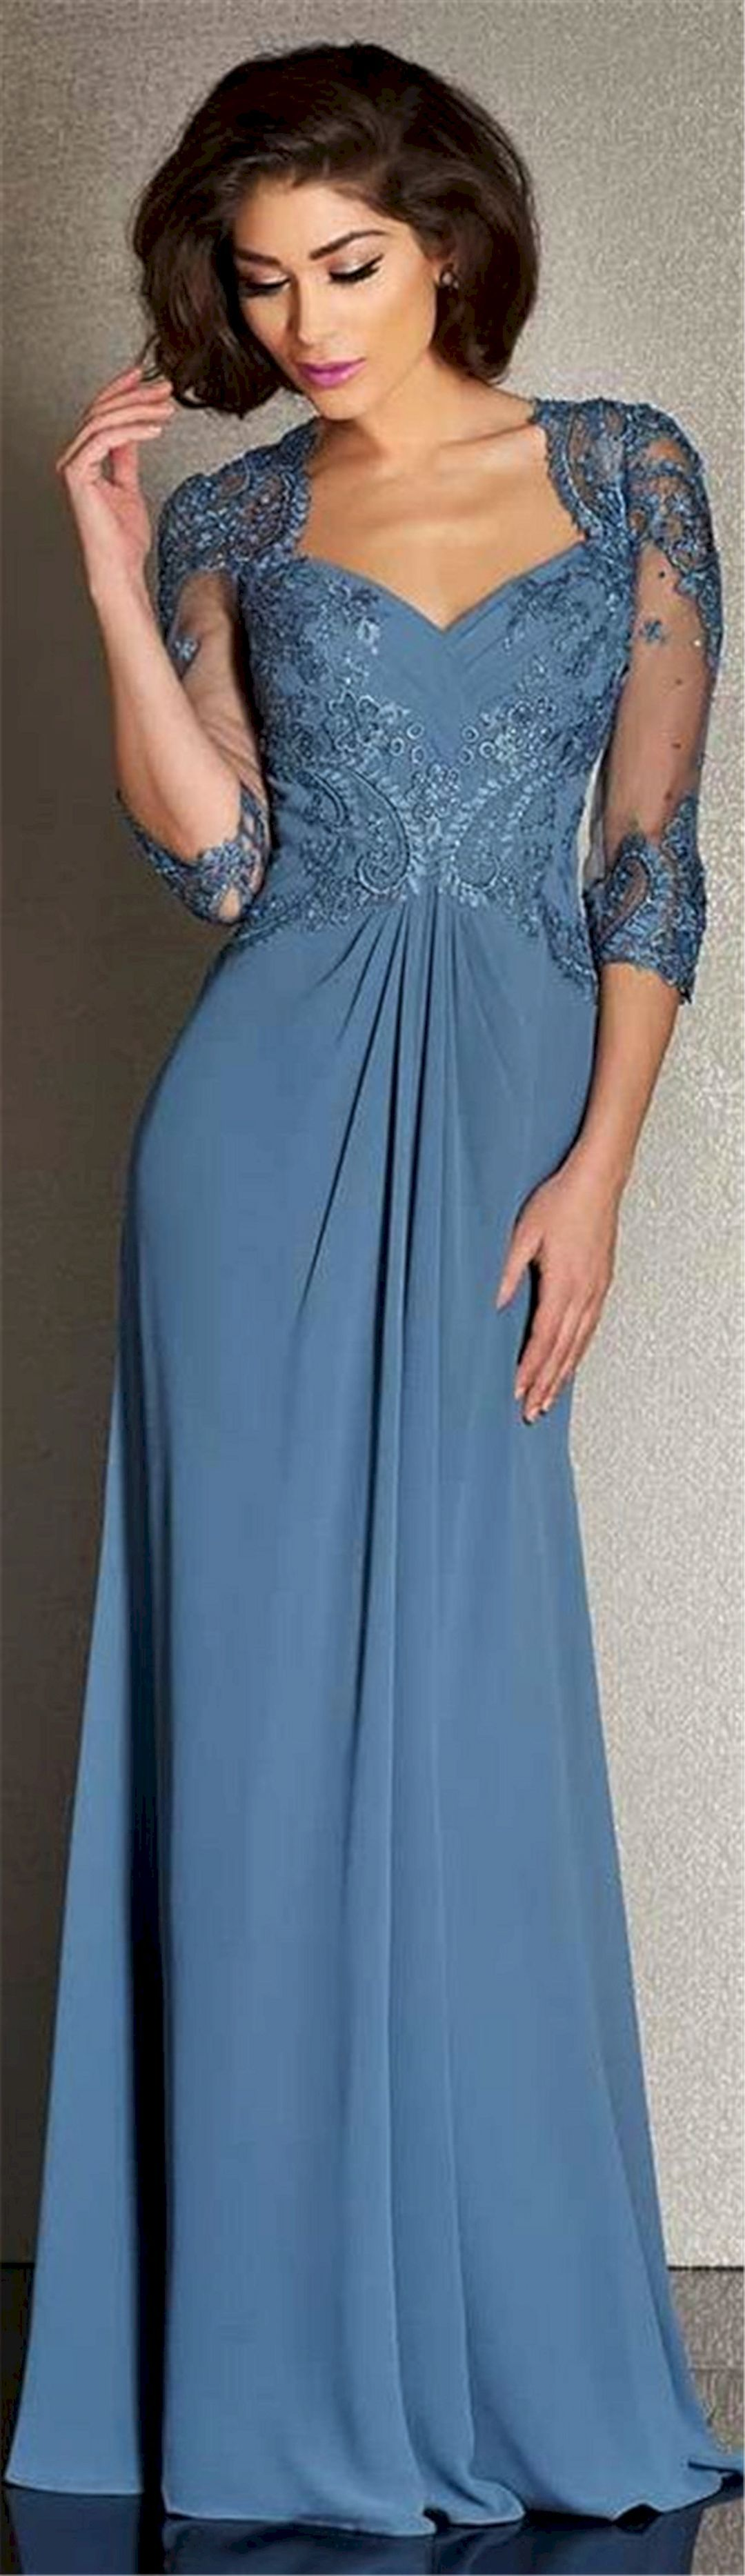 55+ Best Mother of the Bride and Groom Dresses Ideas | Groom dress ...